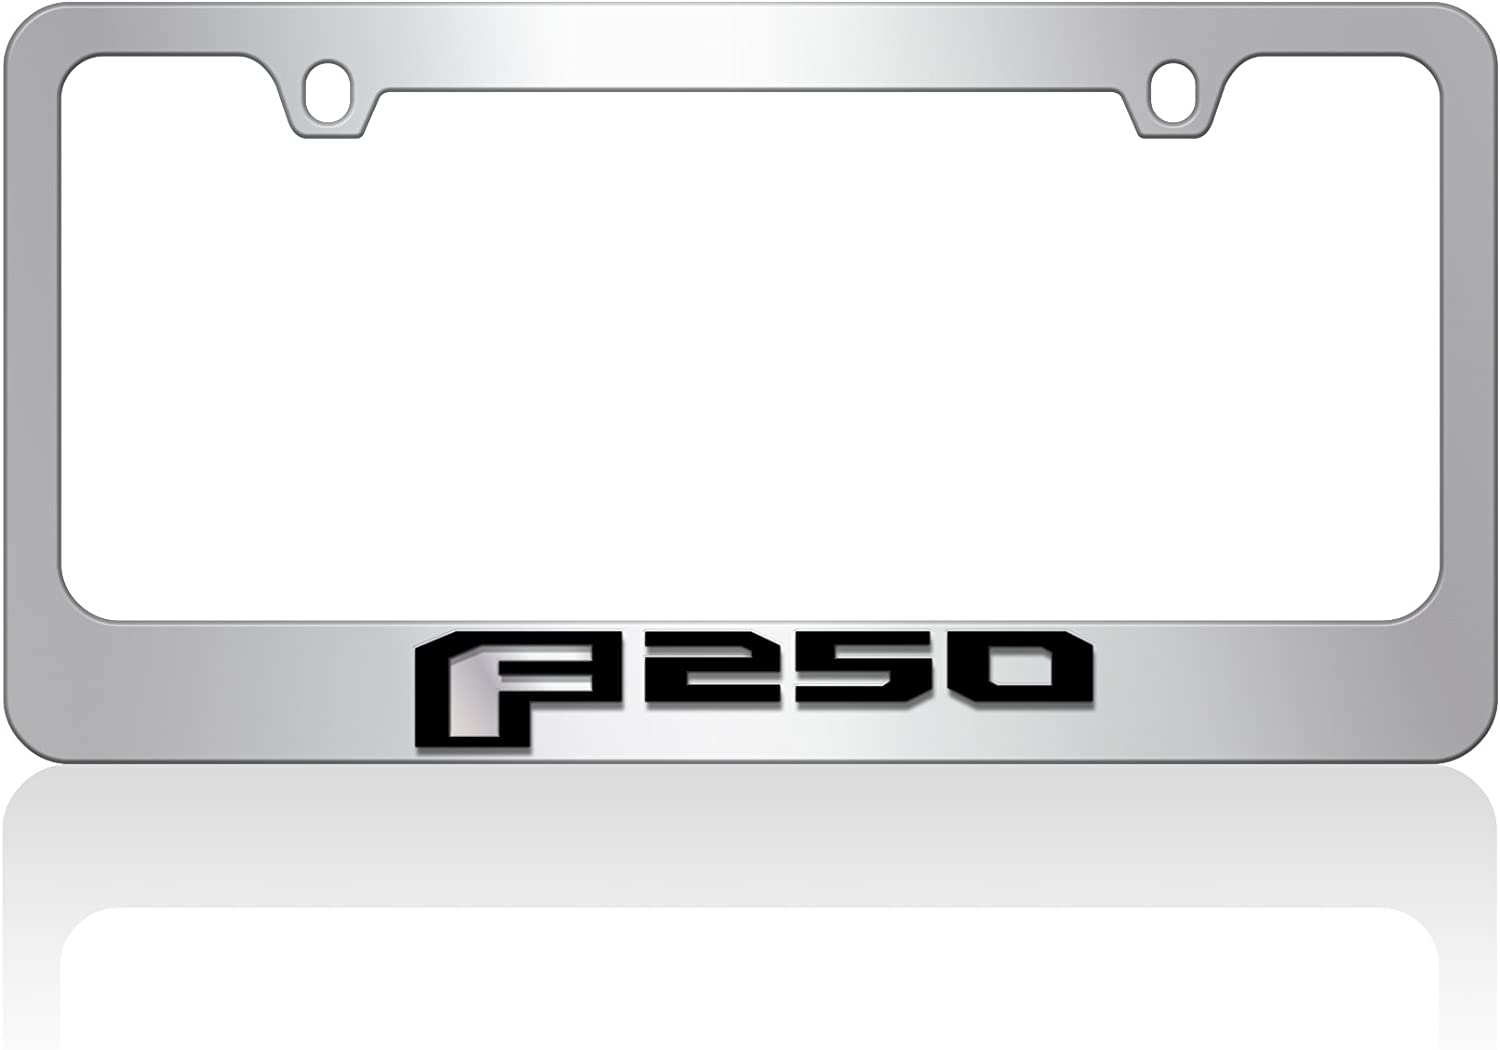 2015 Ford F-250 Eurosport Daytona- Compatible with - Mirror F Black Word Chrome License Plate Frame